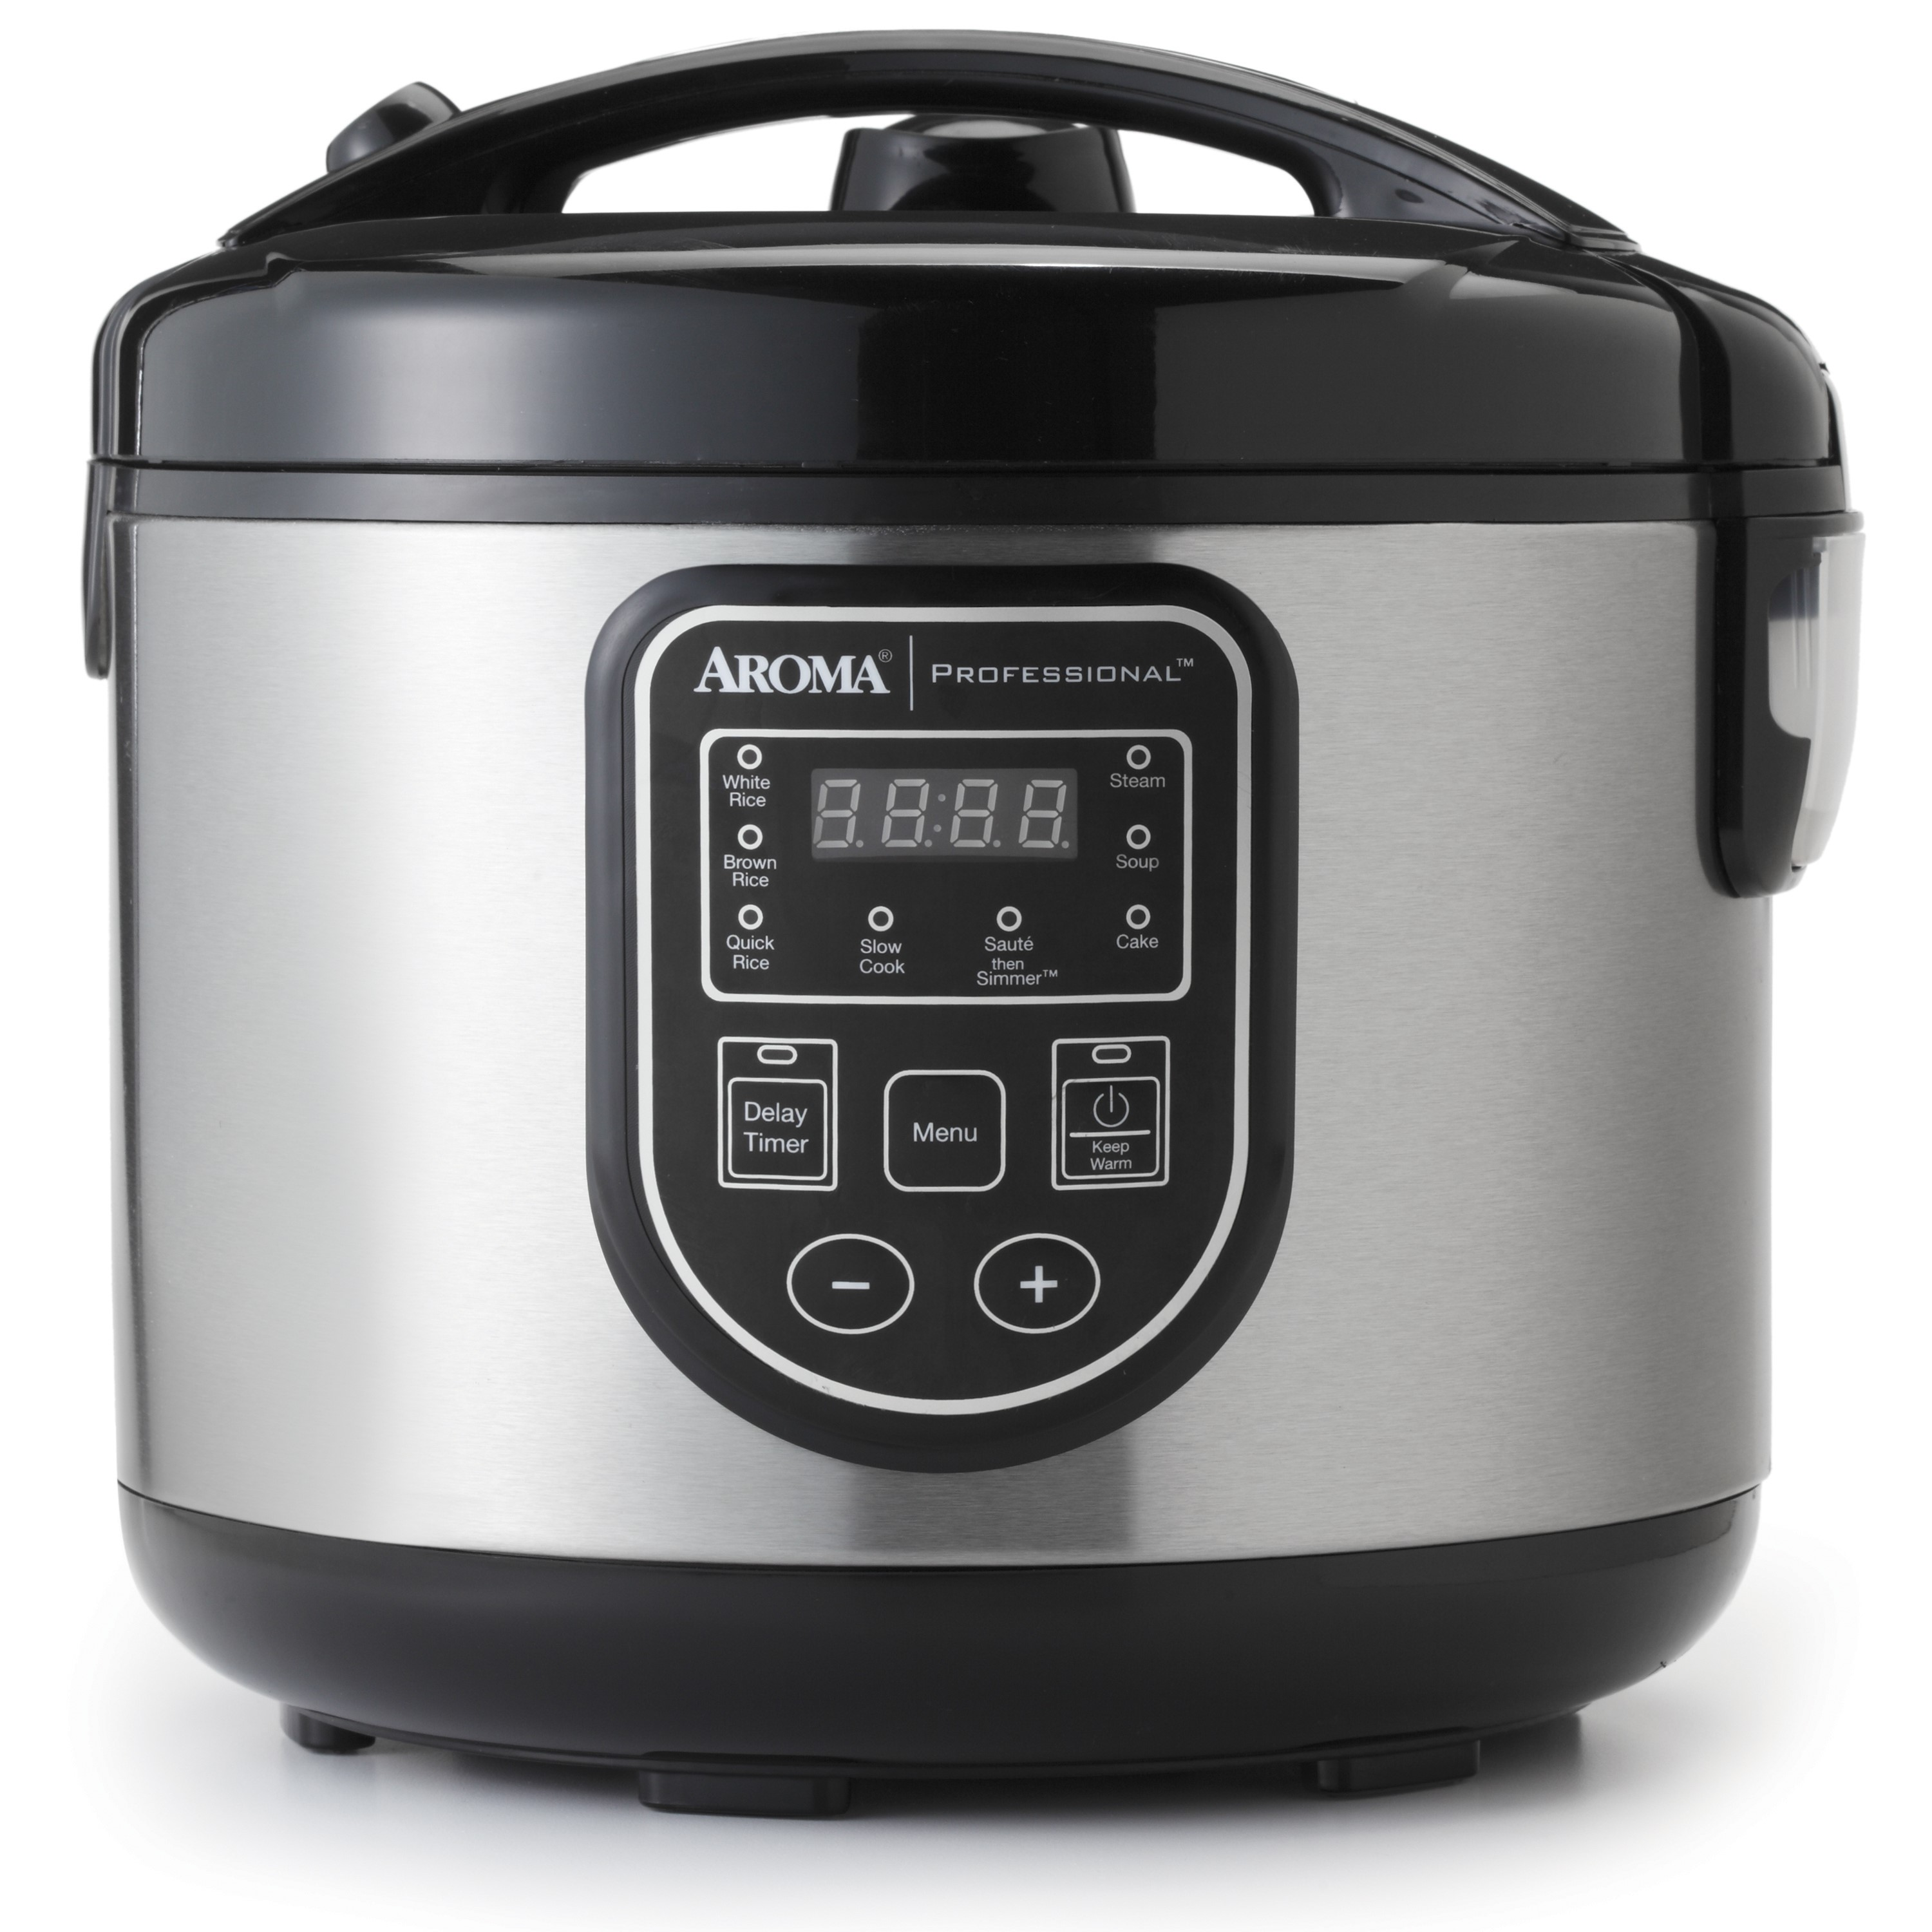 AROMA 16-cup (Cooked) Digital Rice Cooker, Slow Cooker and Food Steamer (ARC-988SB)